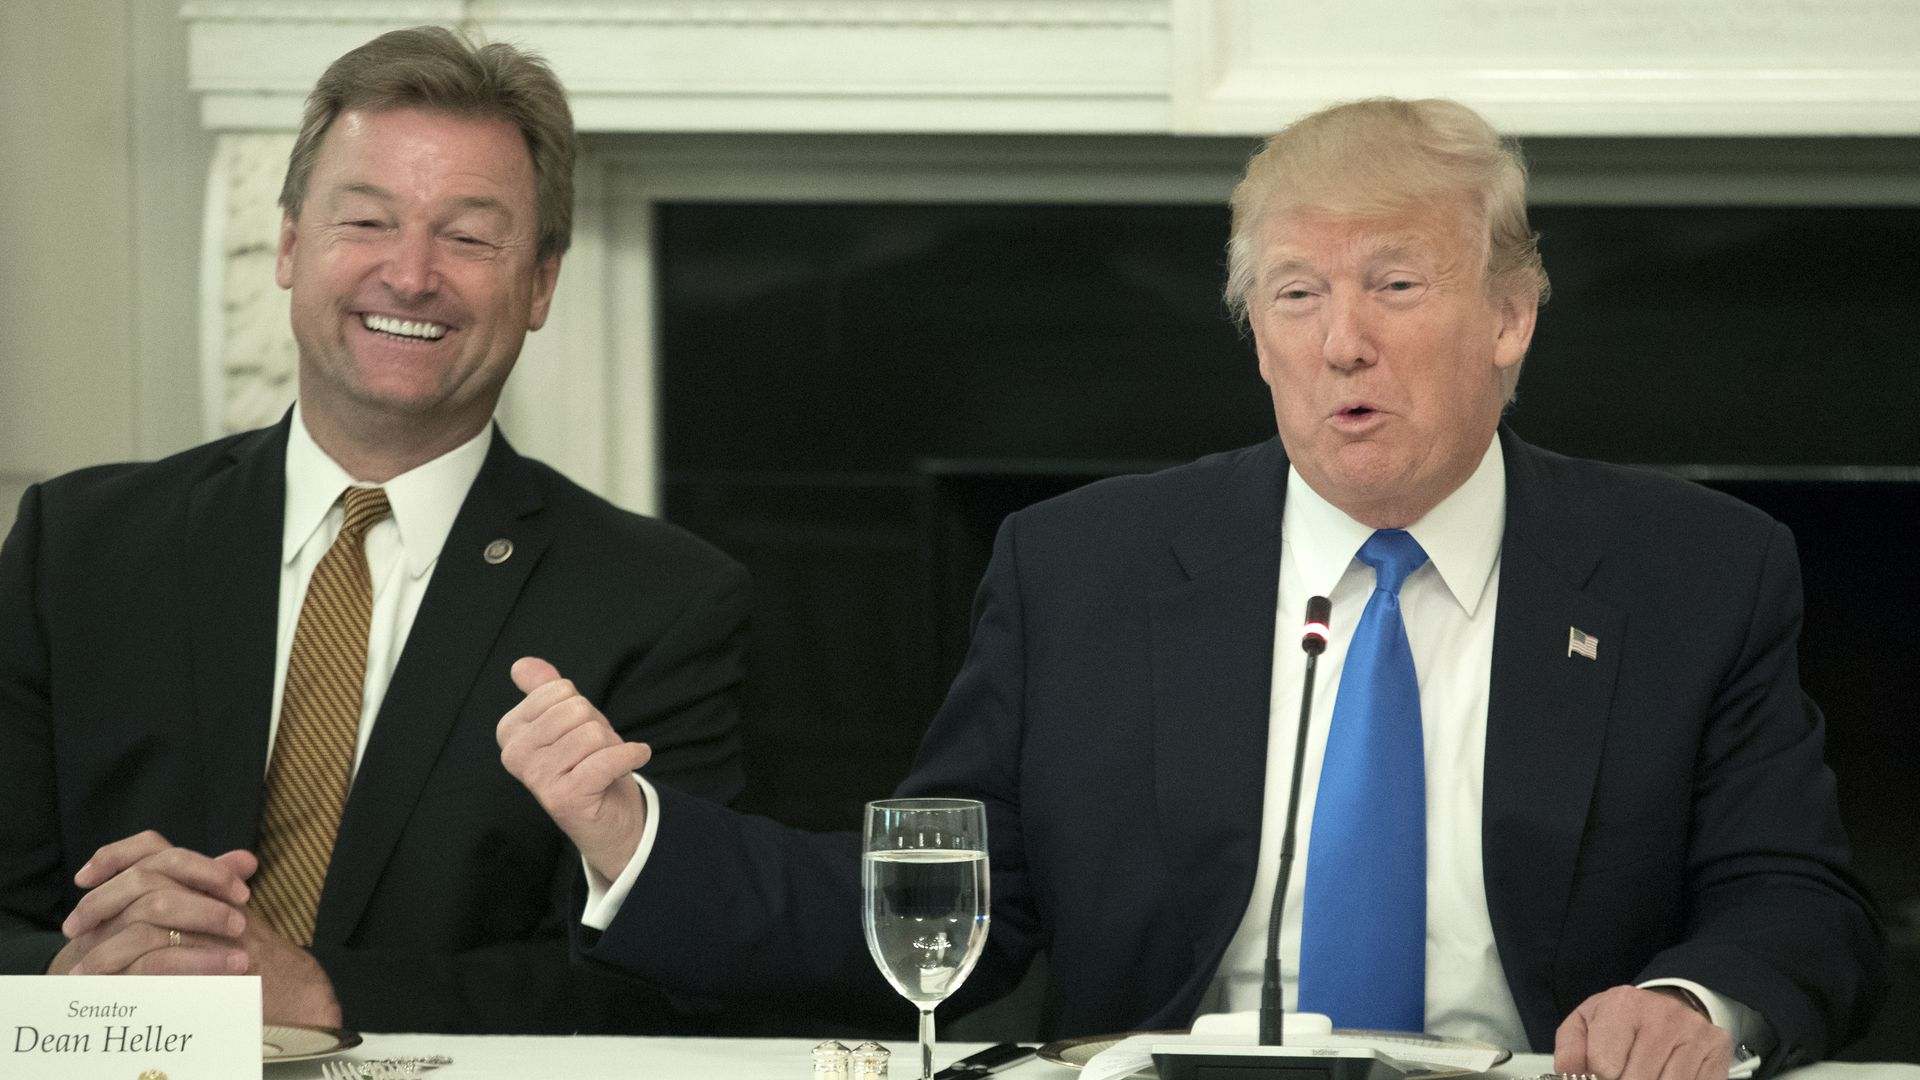 Sen. Dean Heller and President Trump sitting at a table next to each other